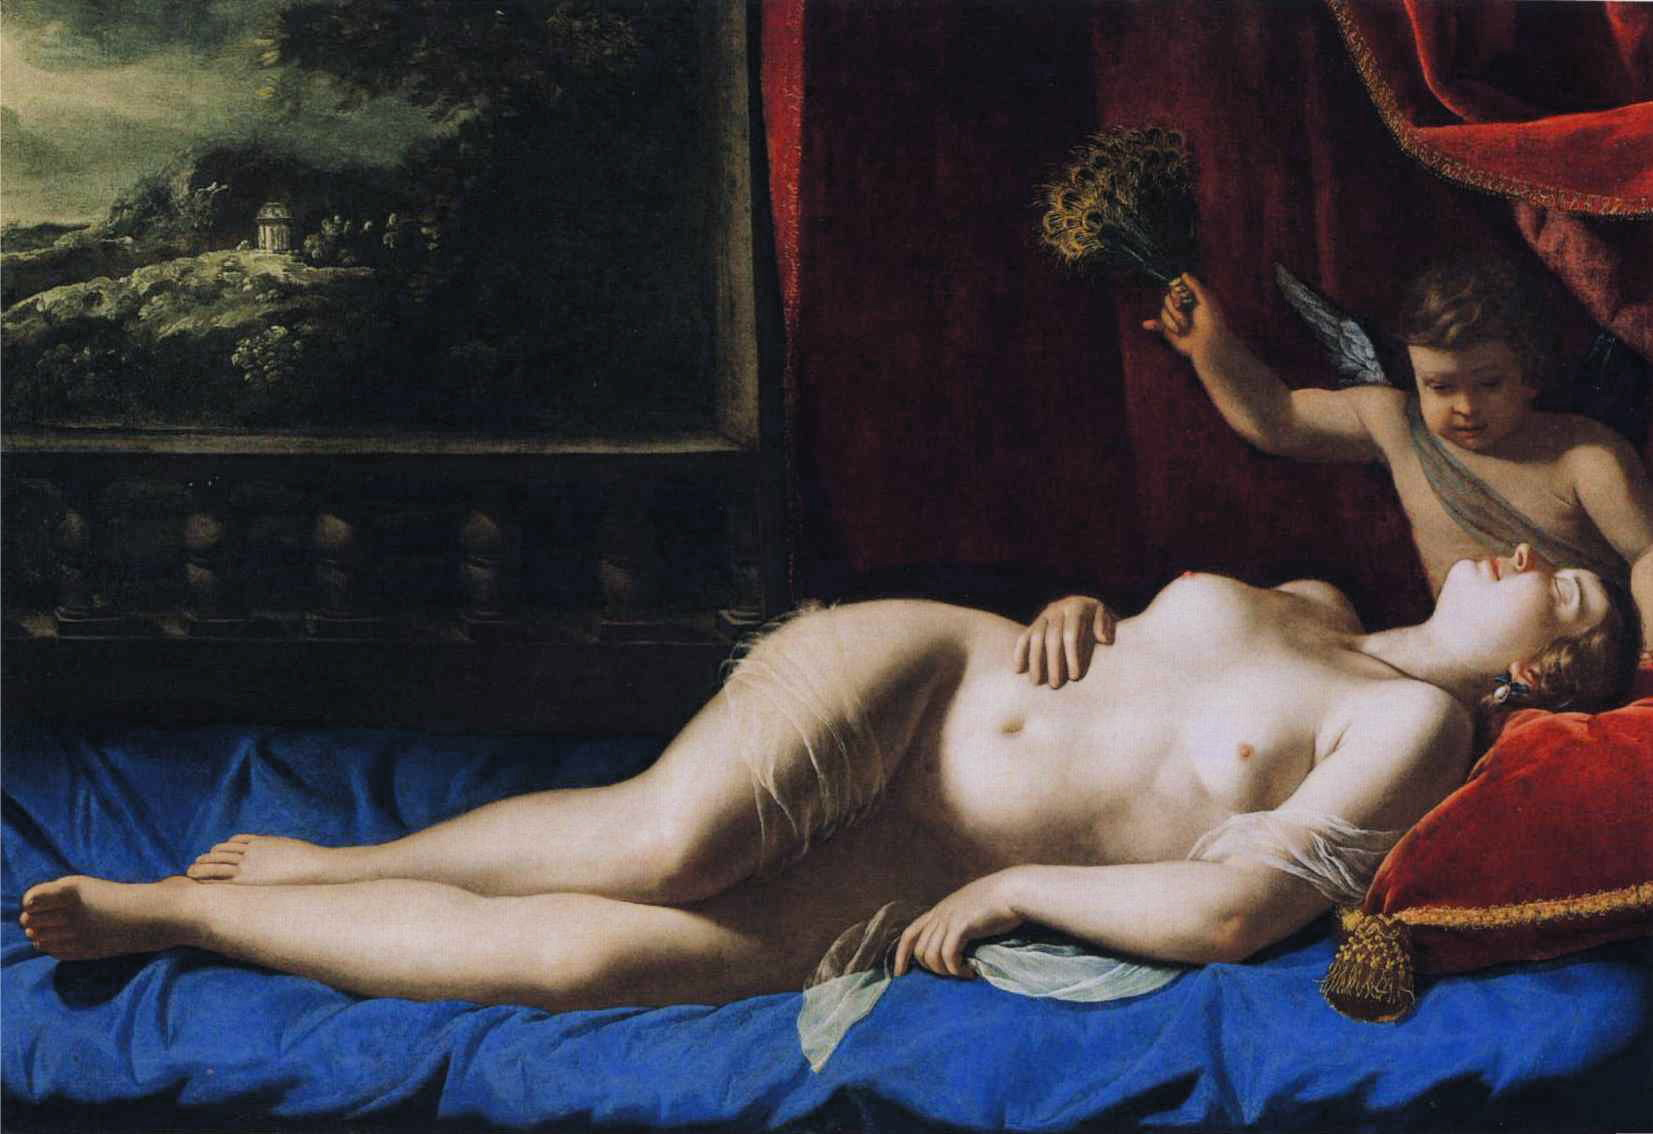 Artemisia Gentileschi, Cupid and Venus, ca.1926, Virginia Museum of Fine Arts, Richmond, VA, USA.